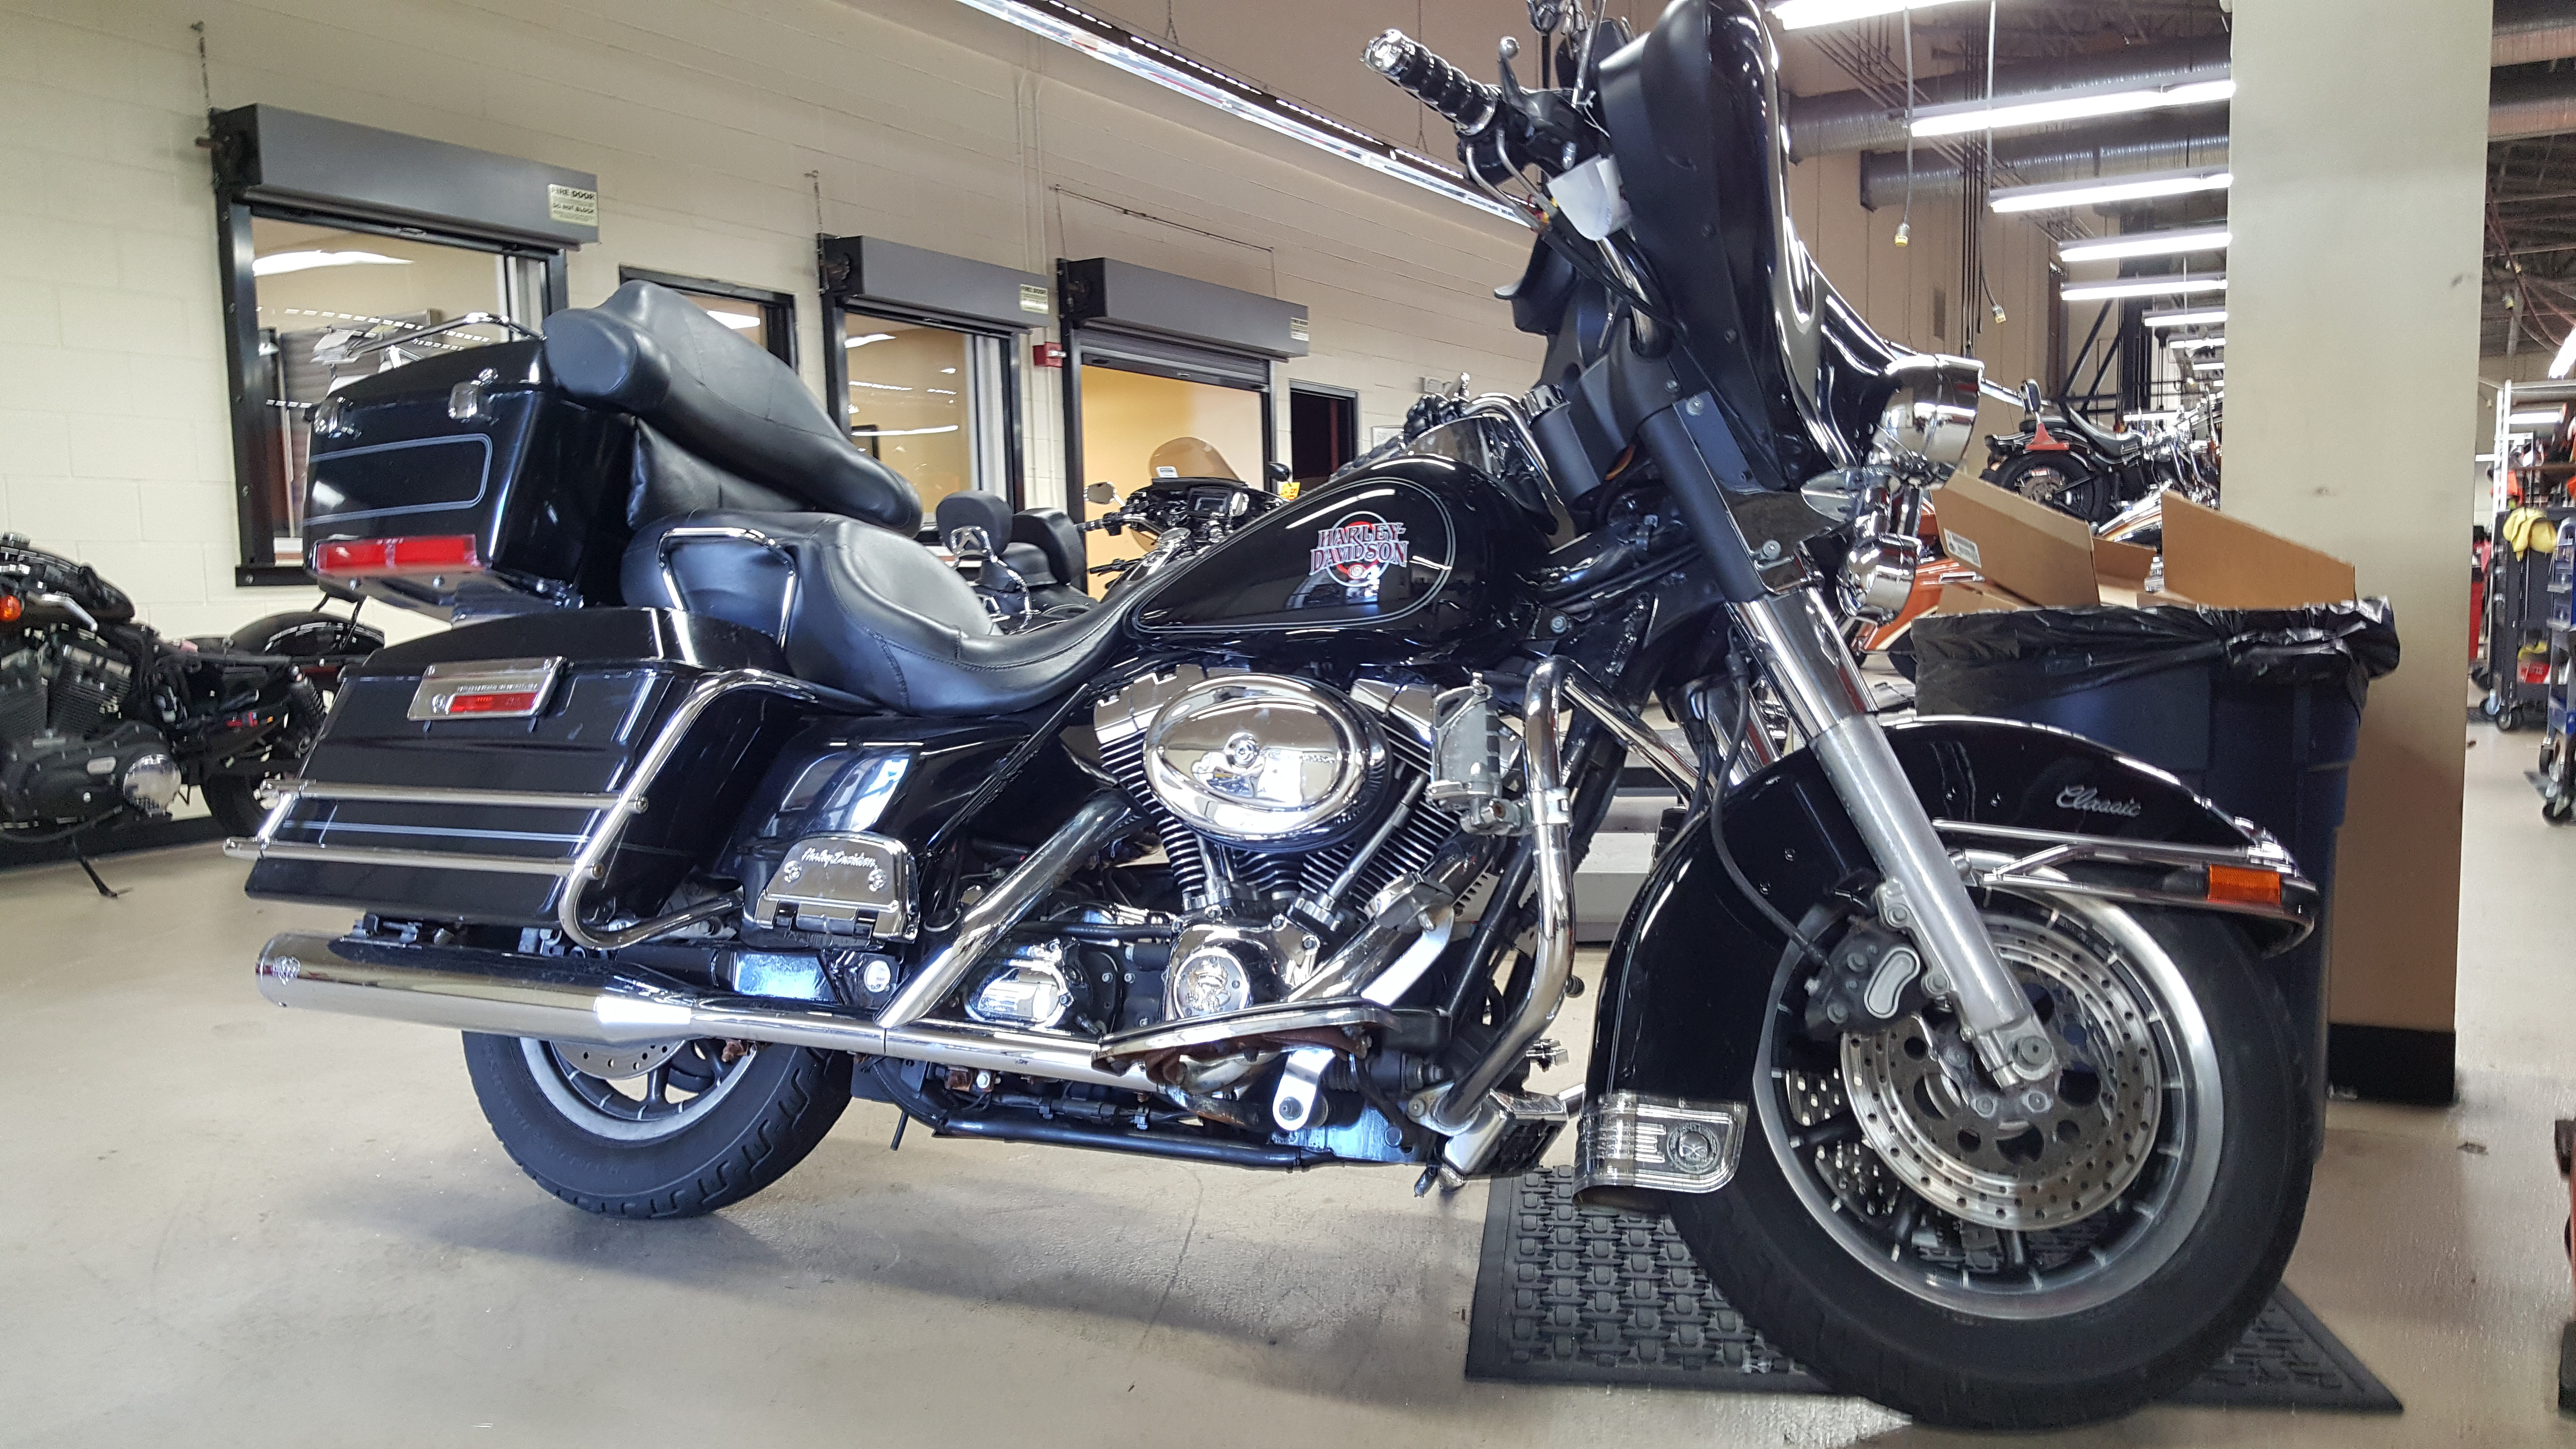 Pre-Owned 2004 Harley-Davidson Electra Glide Classic